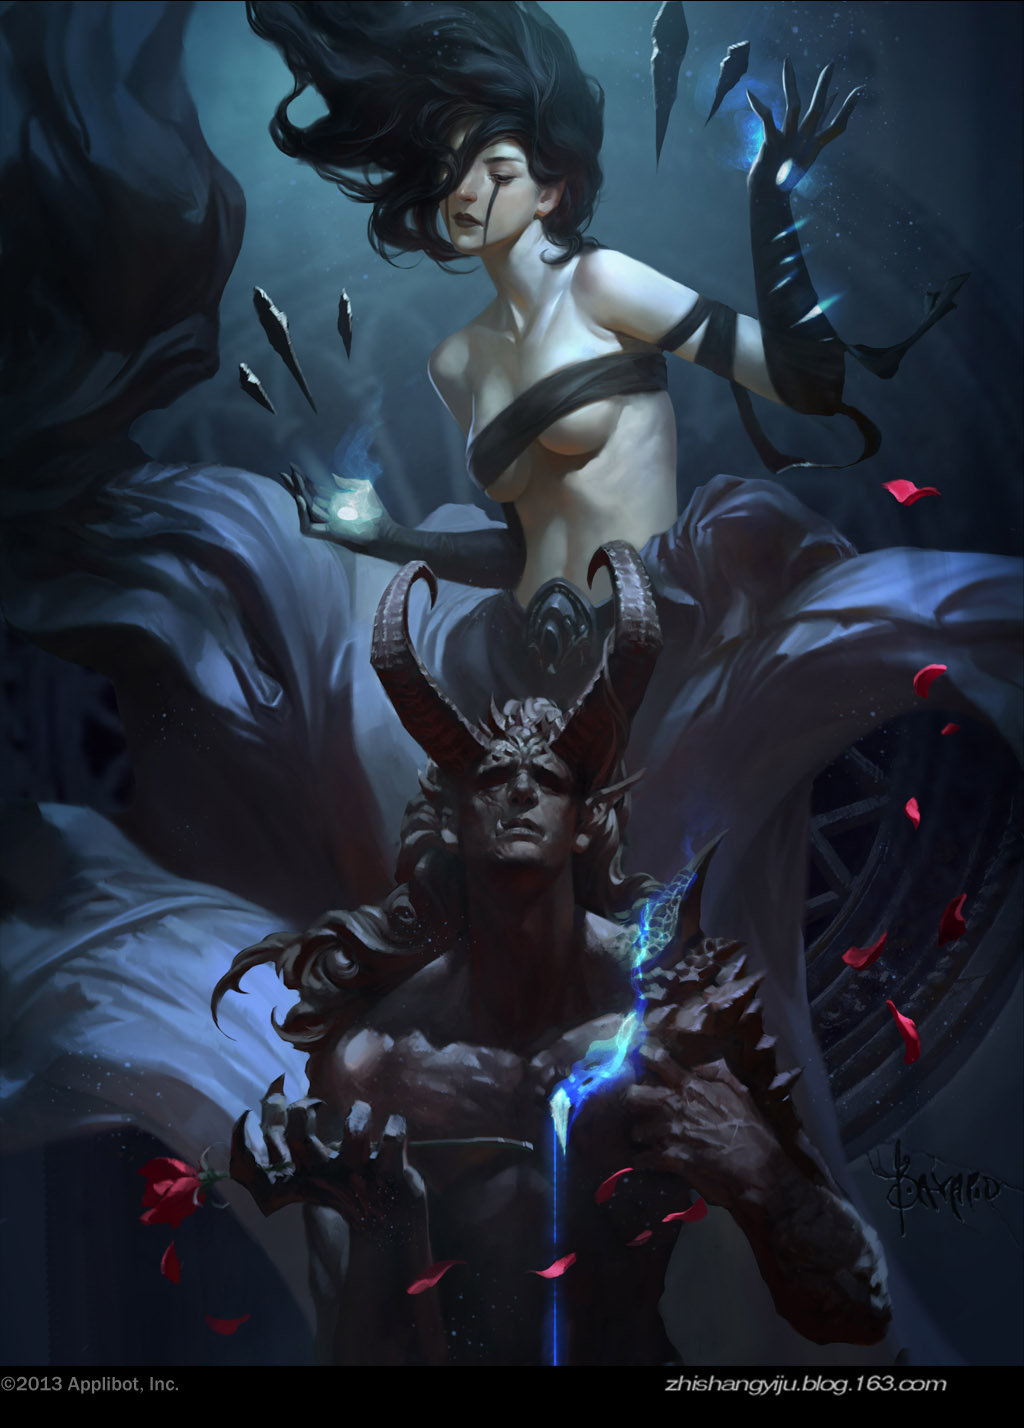 Les fabuleuses illustrations en digital painting de Bayard Wu